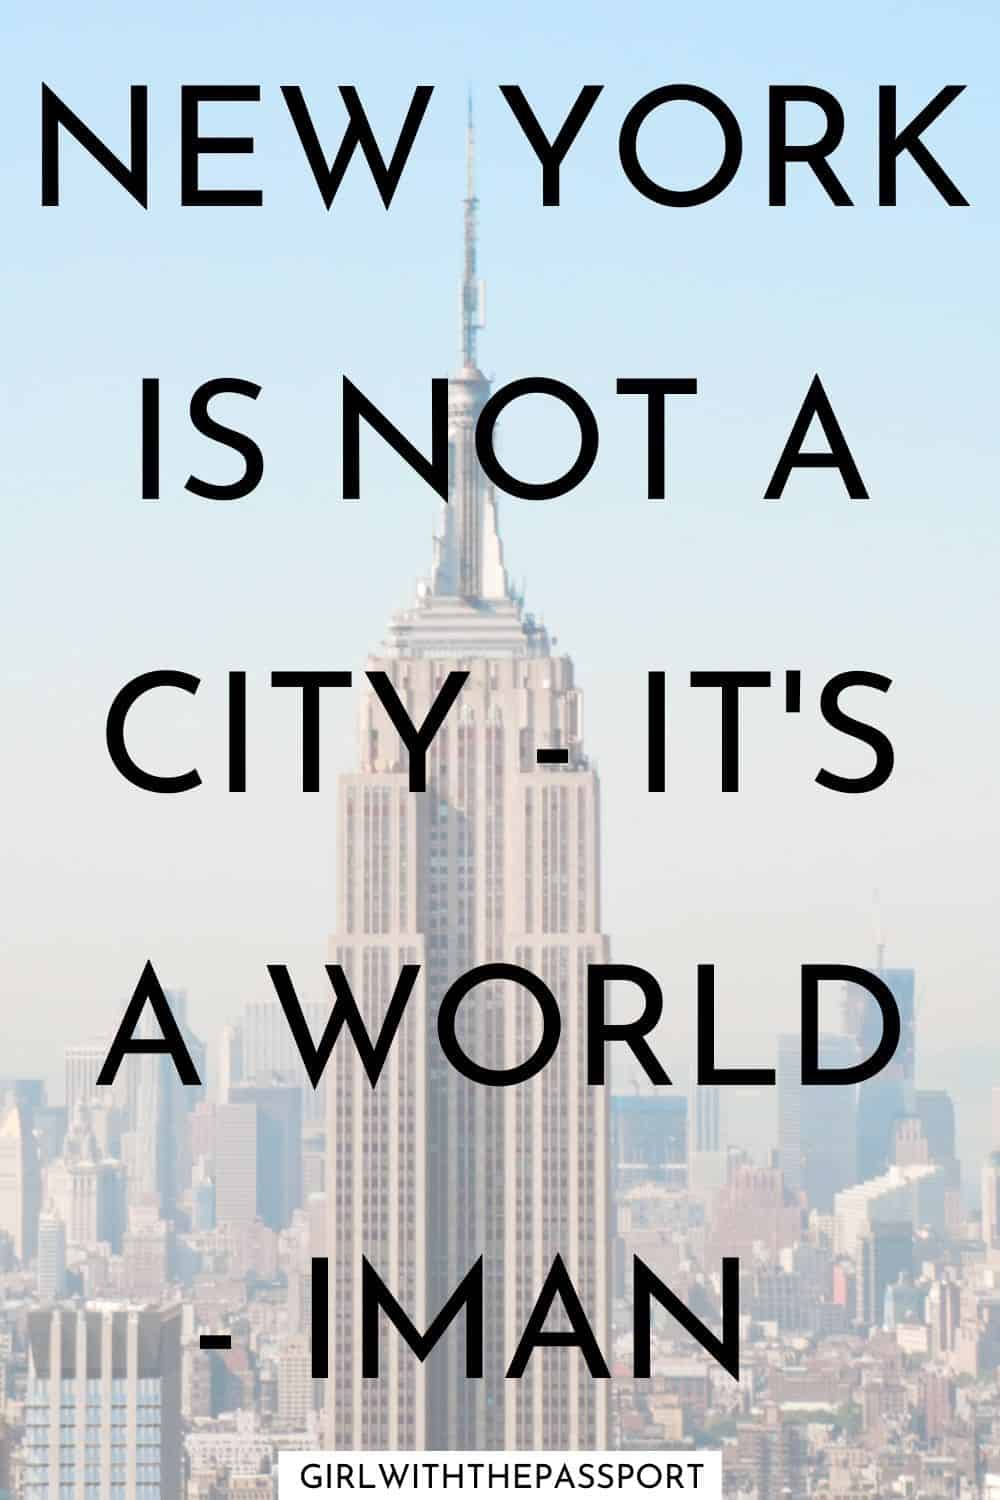 """New York is not a city - it's a world"" quote."